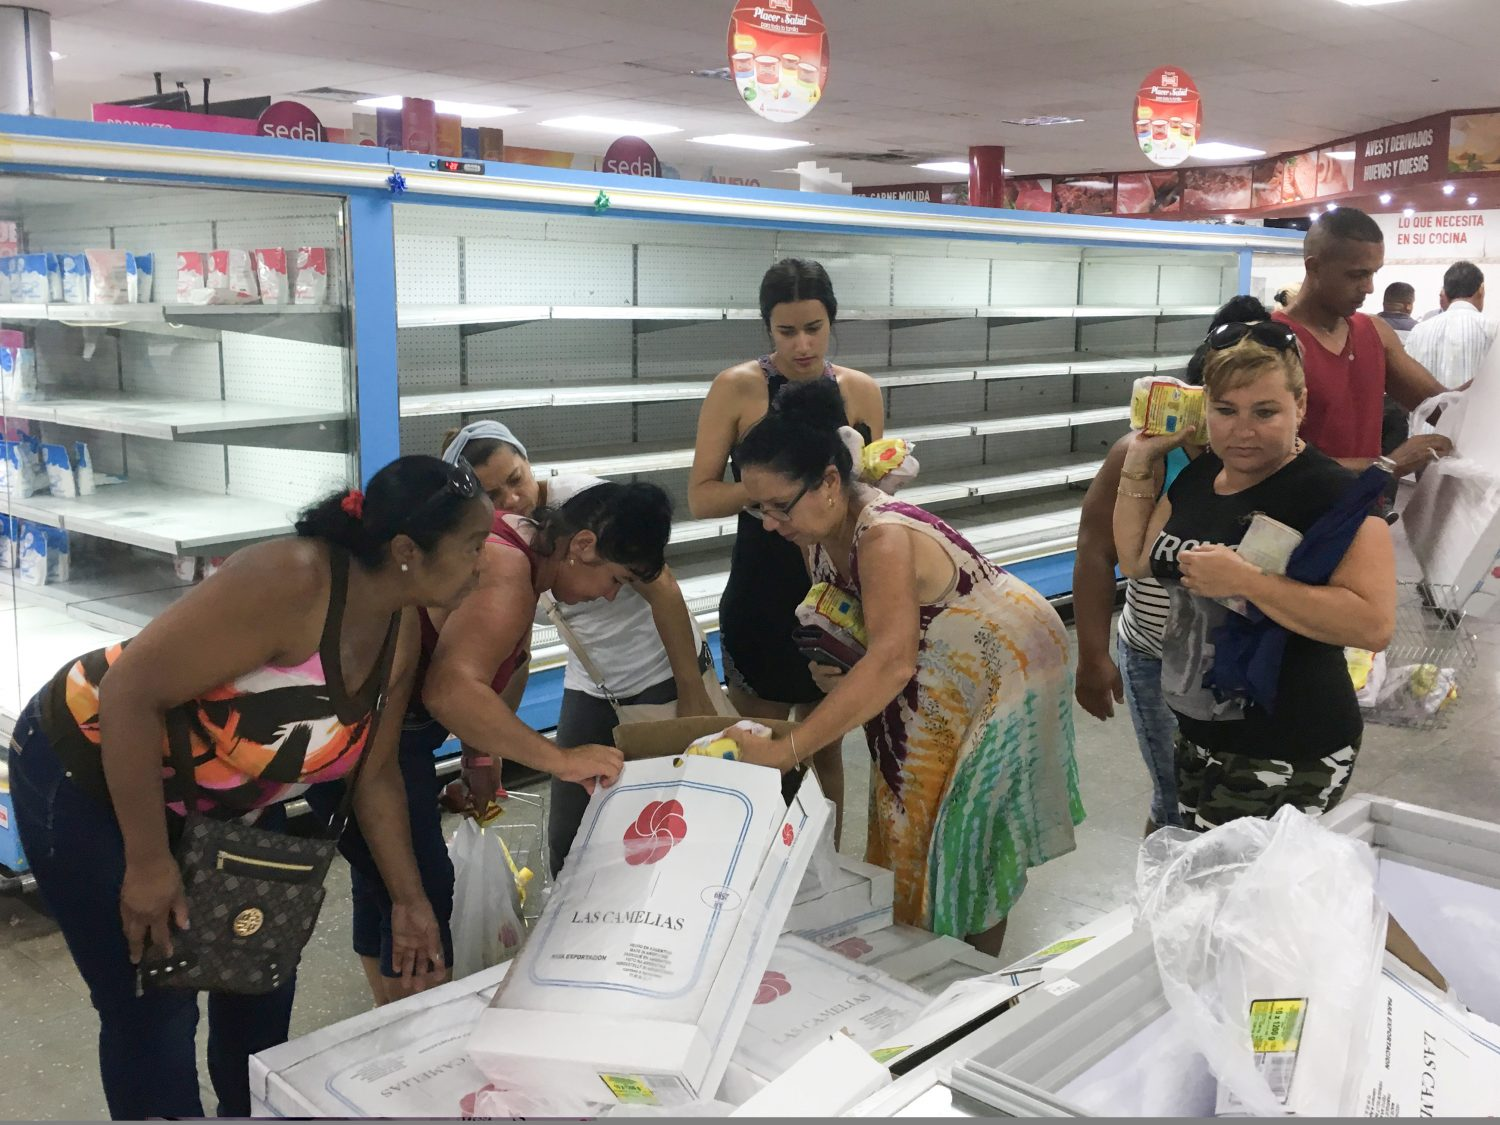 FILE PHOTO: People buy chicken in a supermarket in Havana, Cuba May 13, 2019. REUTERS/Sarah Marsh